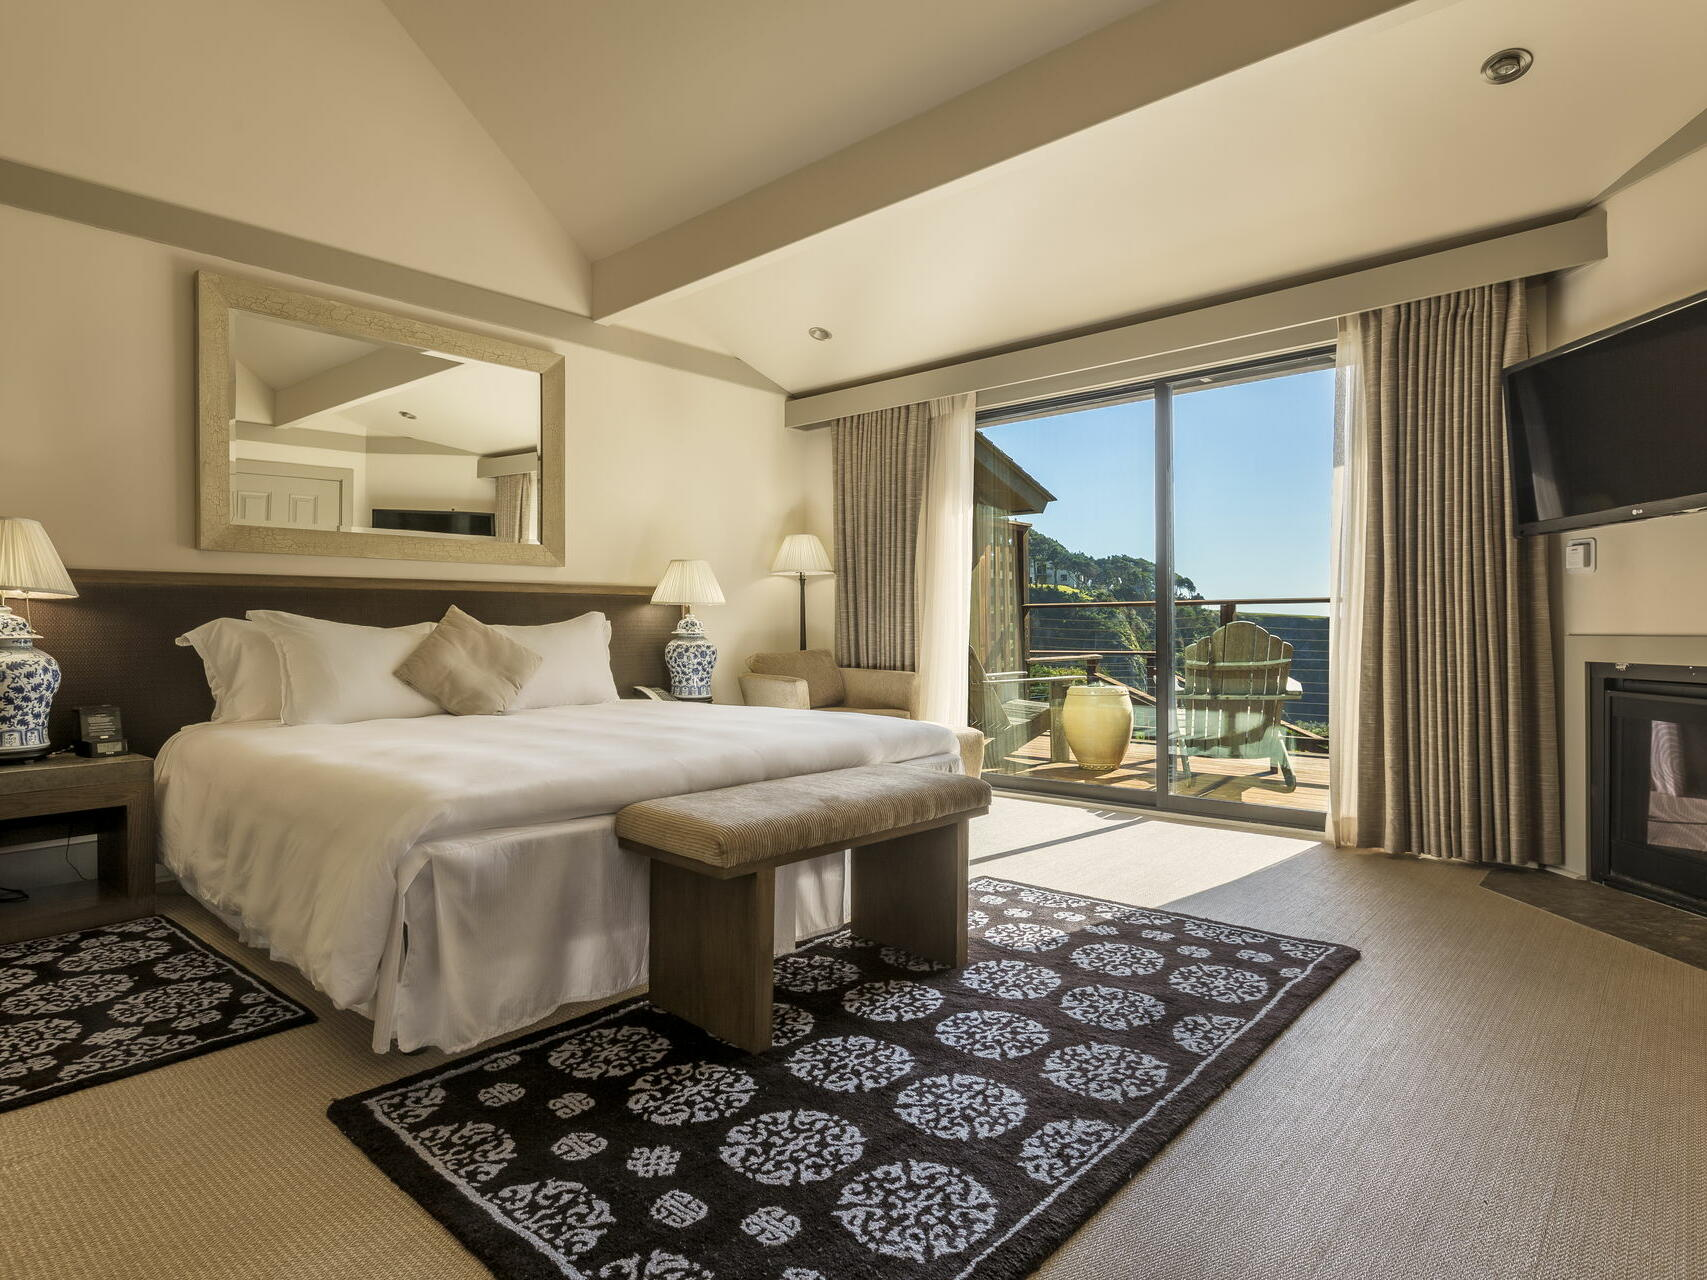 Ocean View King bedroom with kingbed at Heritage House Resort